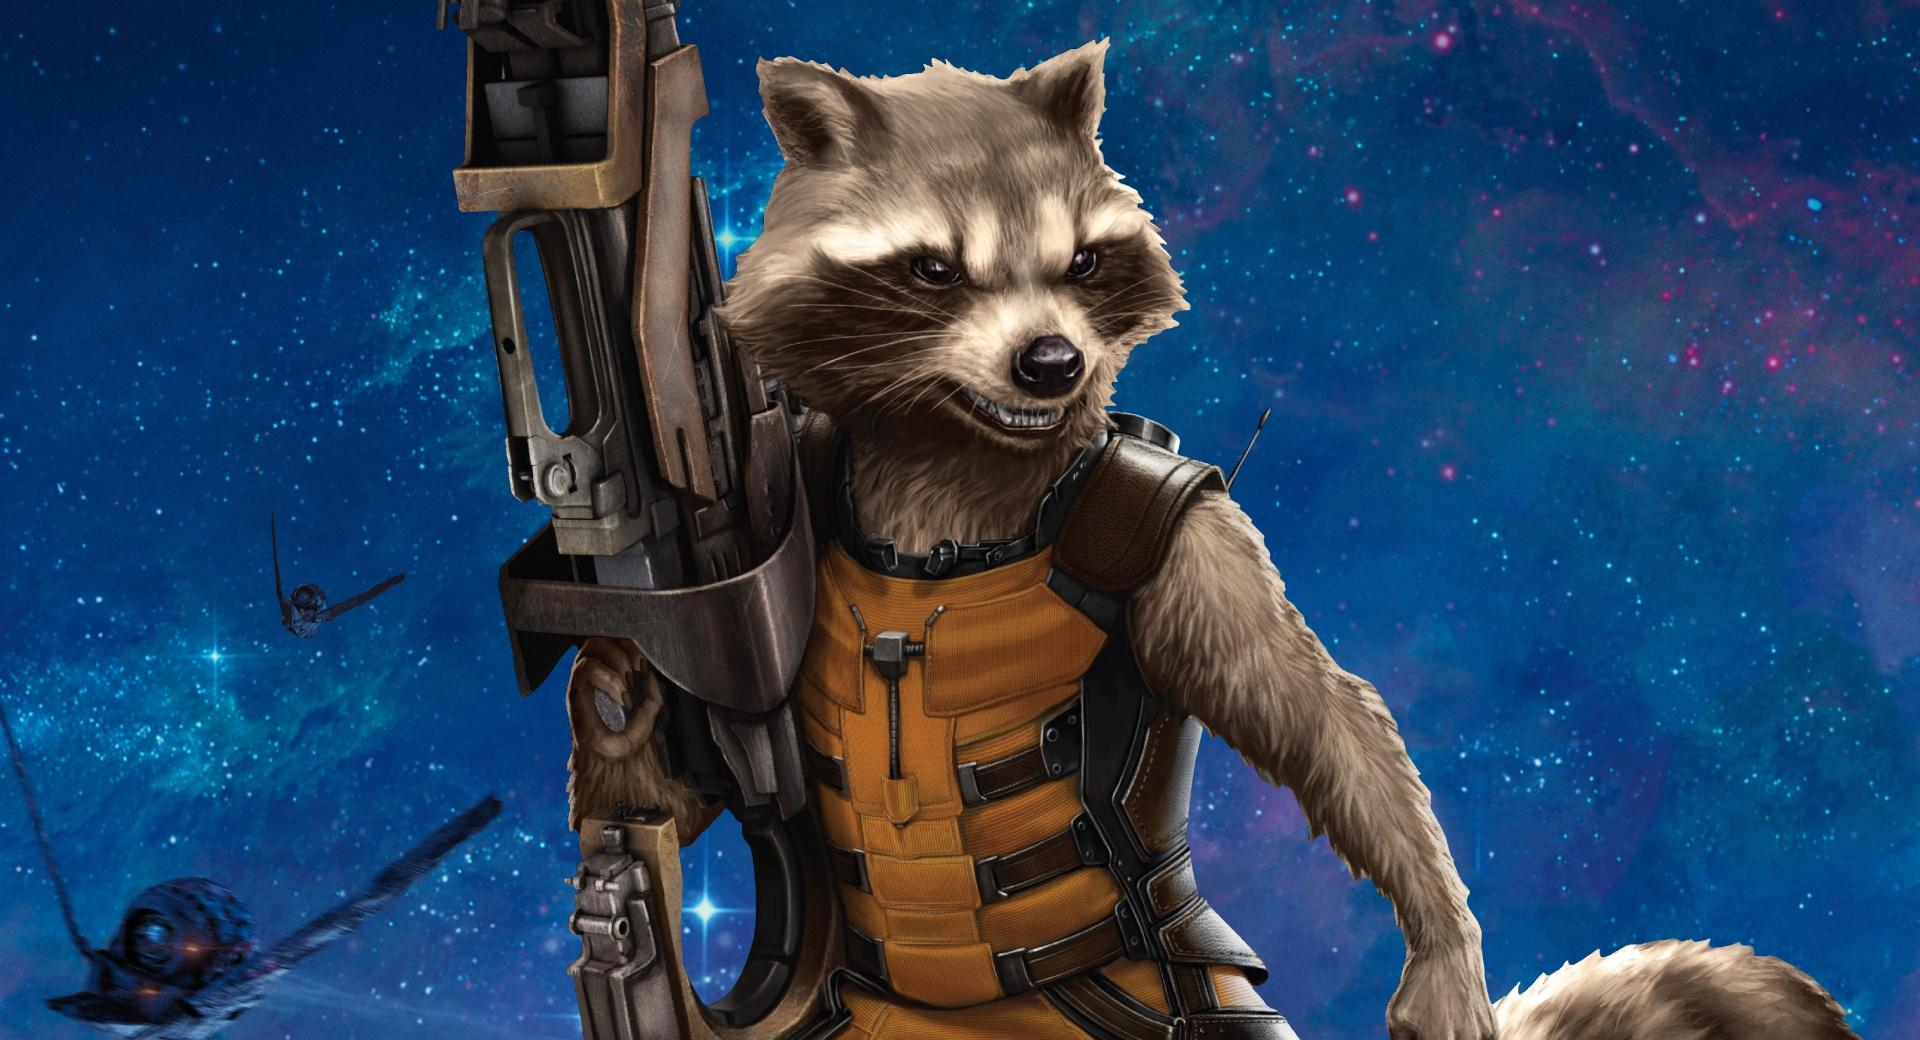 Rocket Raccoon 2014 wallpapers HD quality